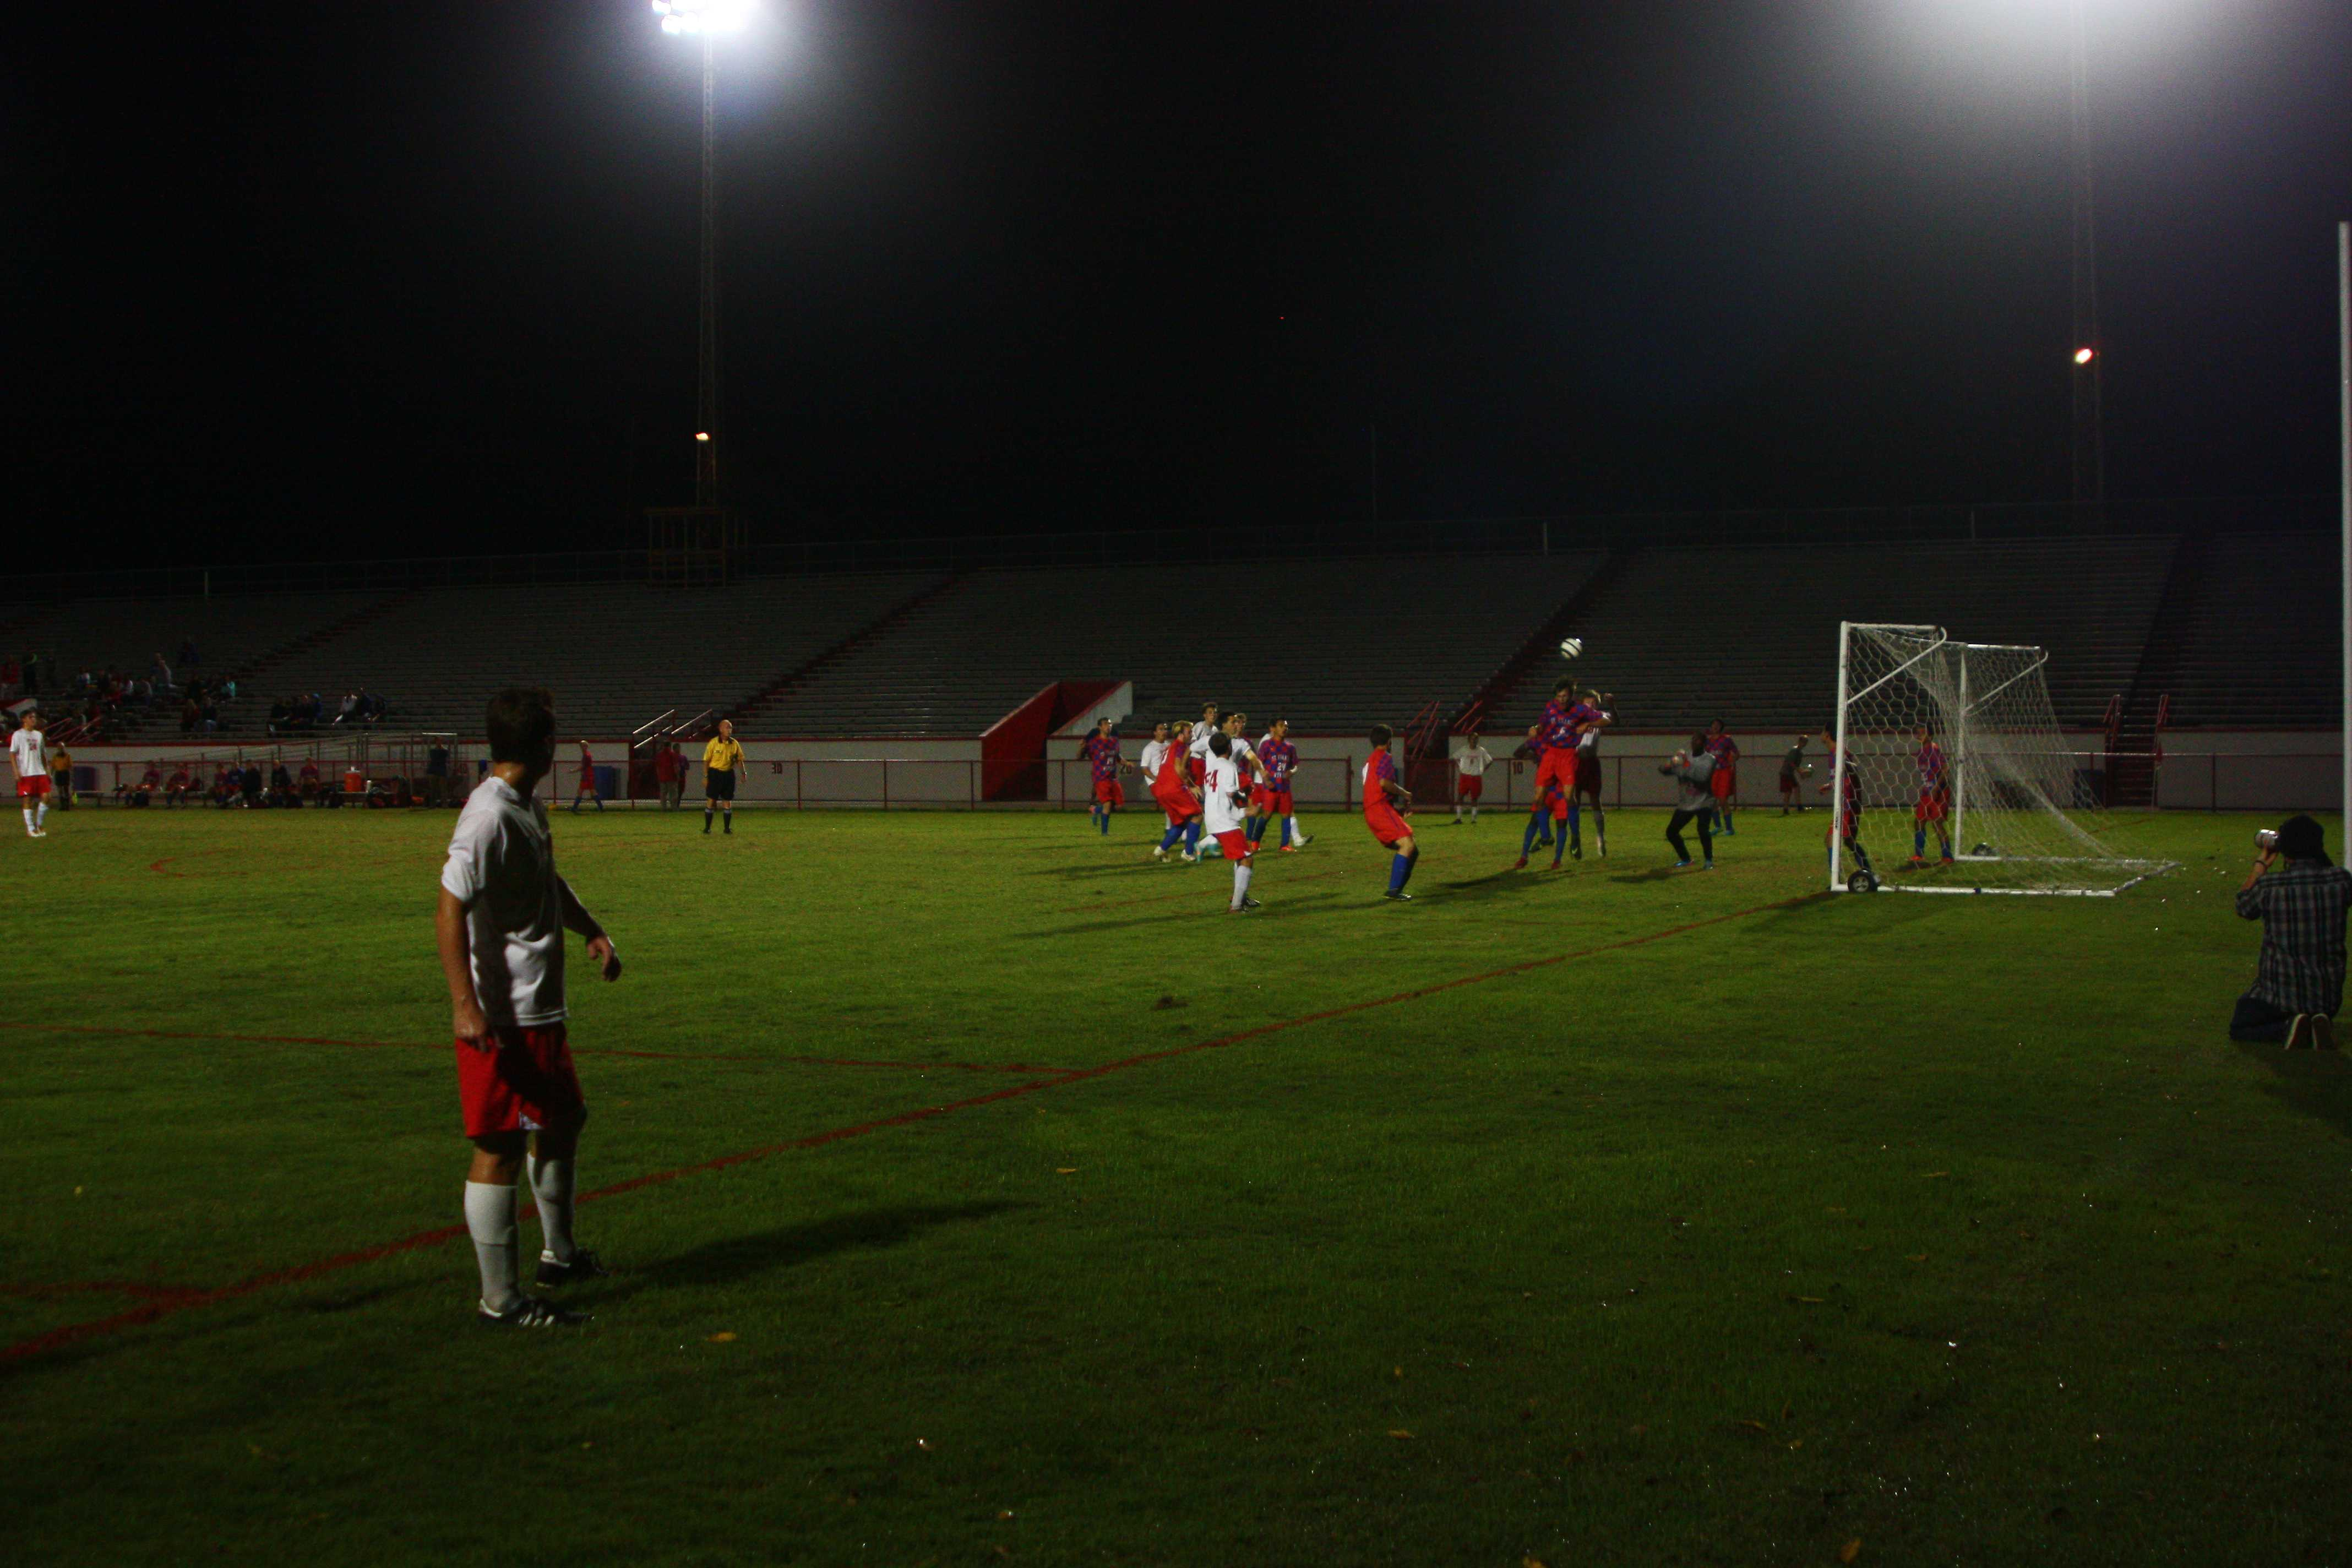 Sam Ross (12, #11) watches the play unfold after kicking a corner-kick in front of the goal